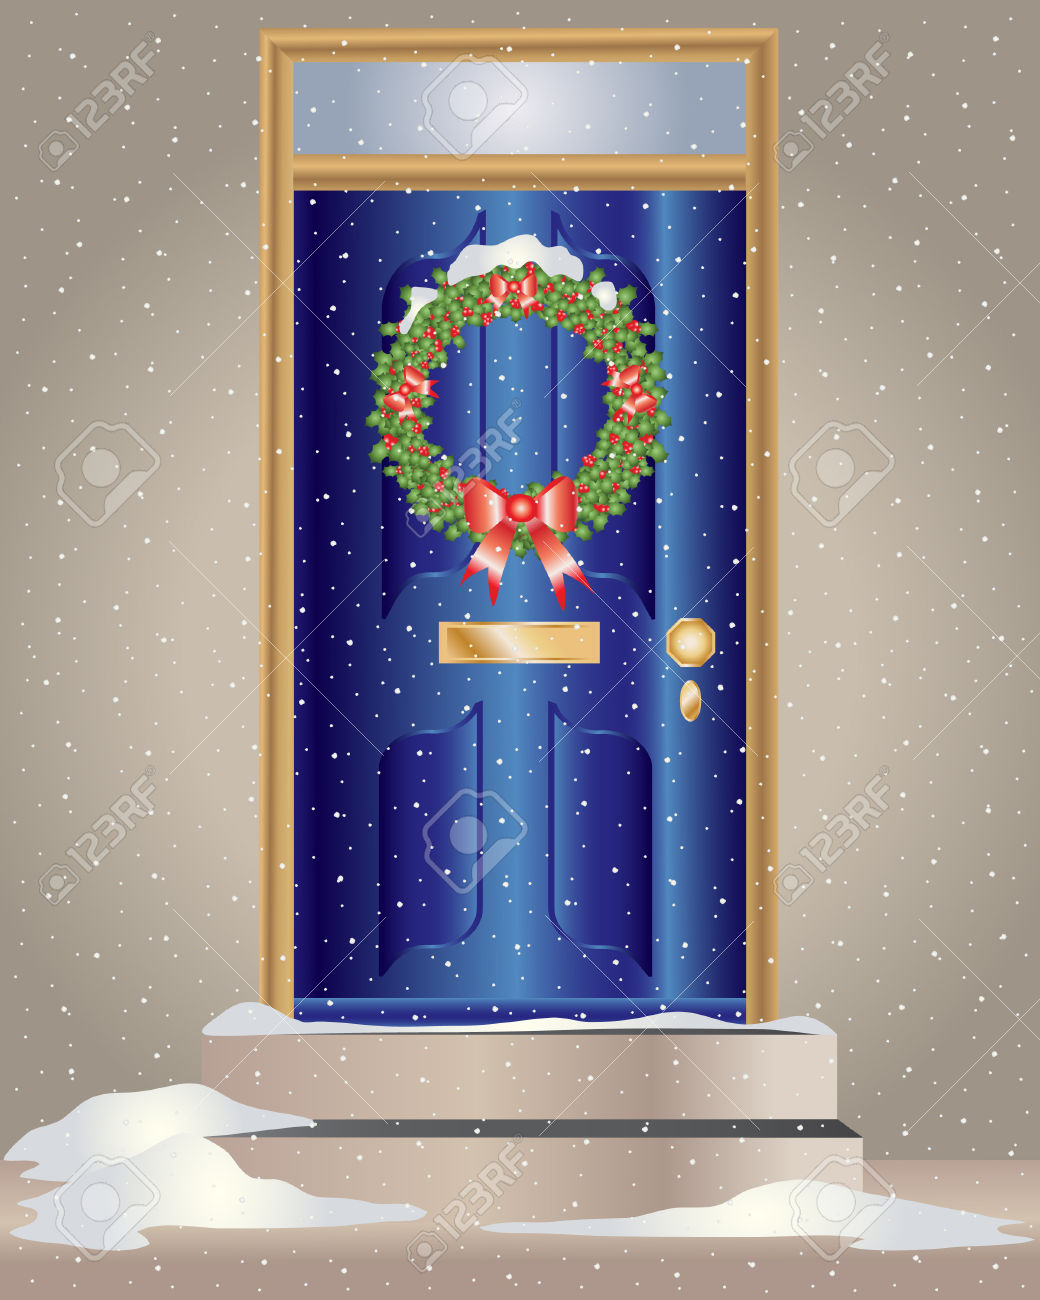 Christmas wreath on front door clipart.